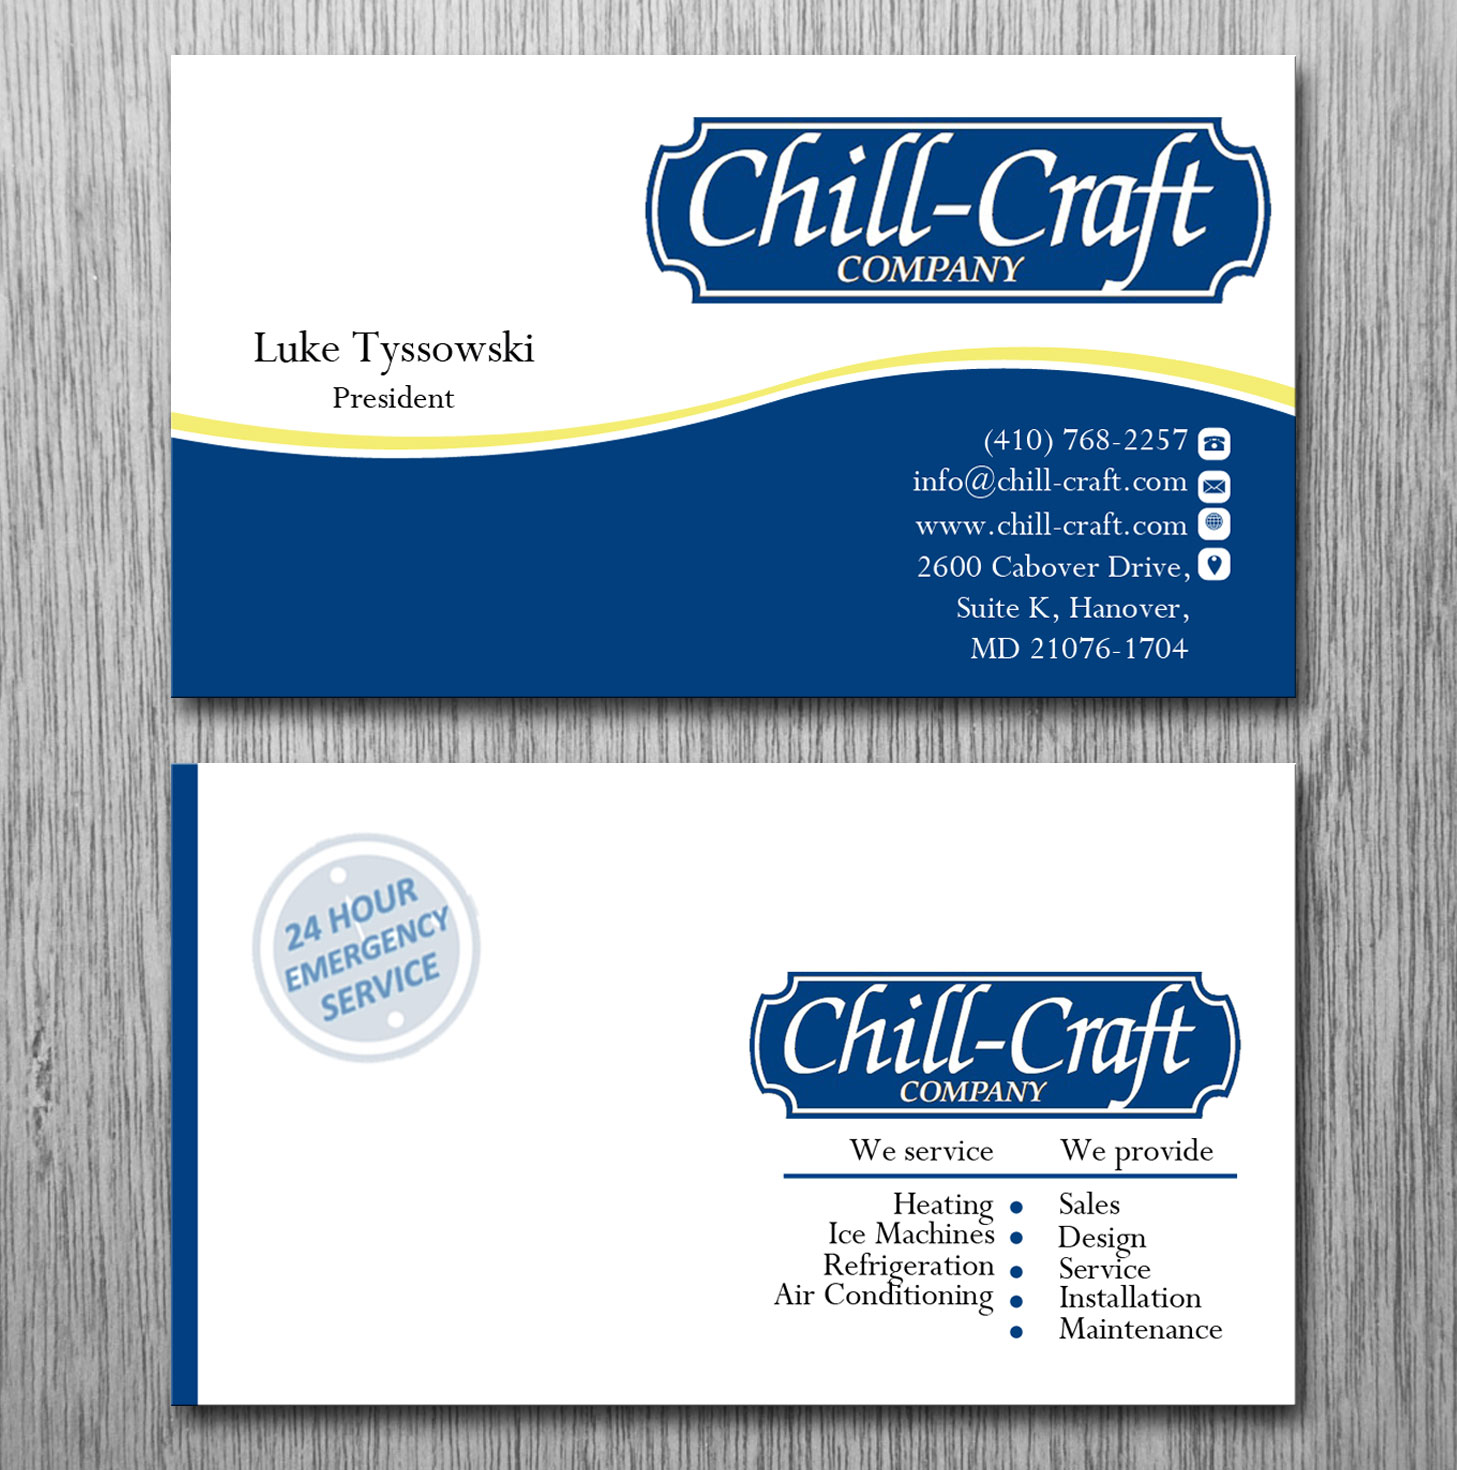 Modern professional business card design for chill craft company business card design by lanka ama for commercial hvac and refrigeration business cards design magicingreecefo Image collections